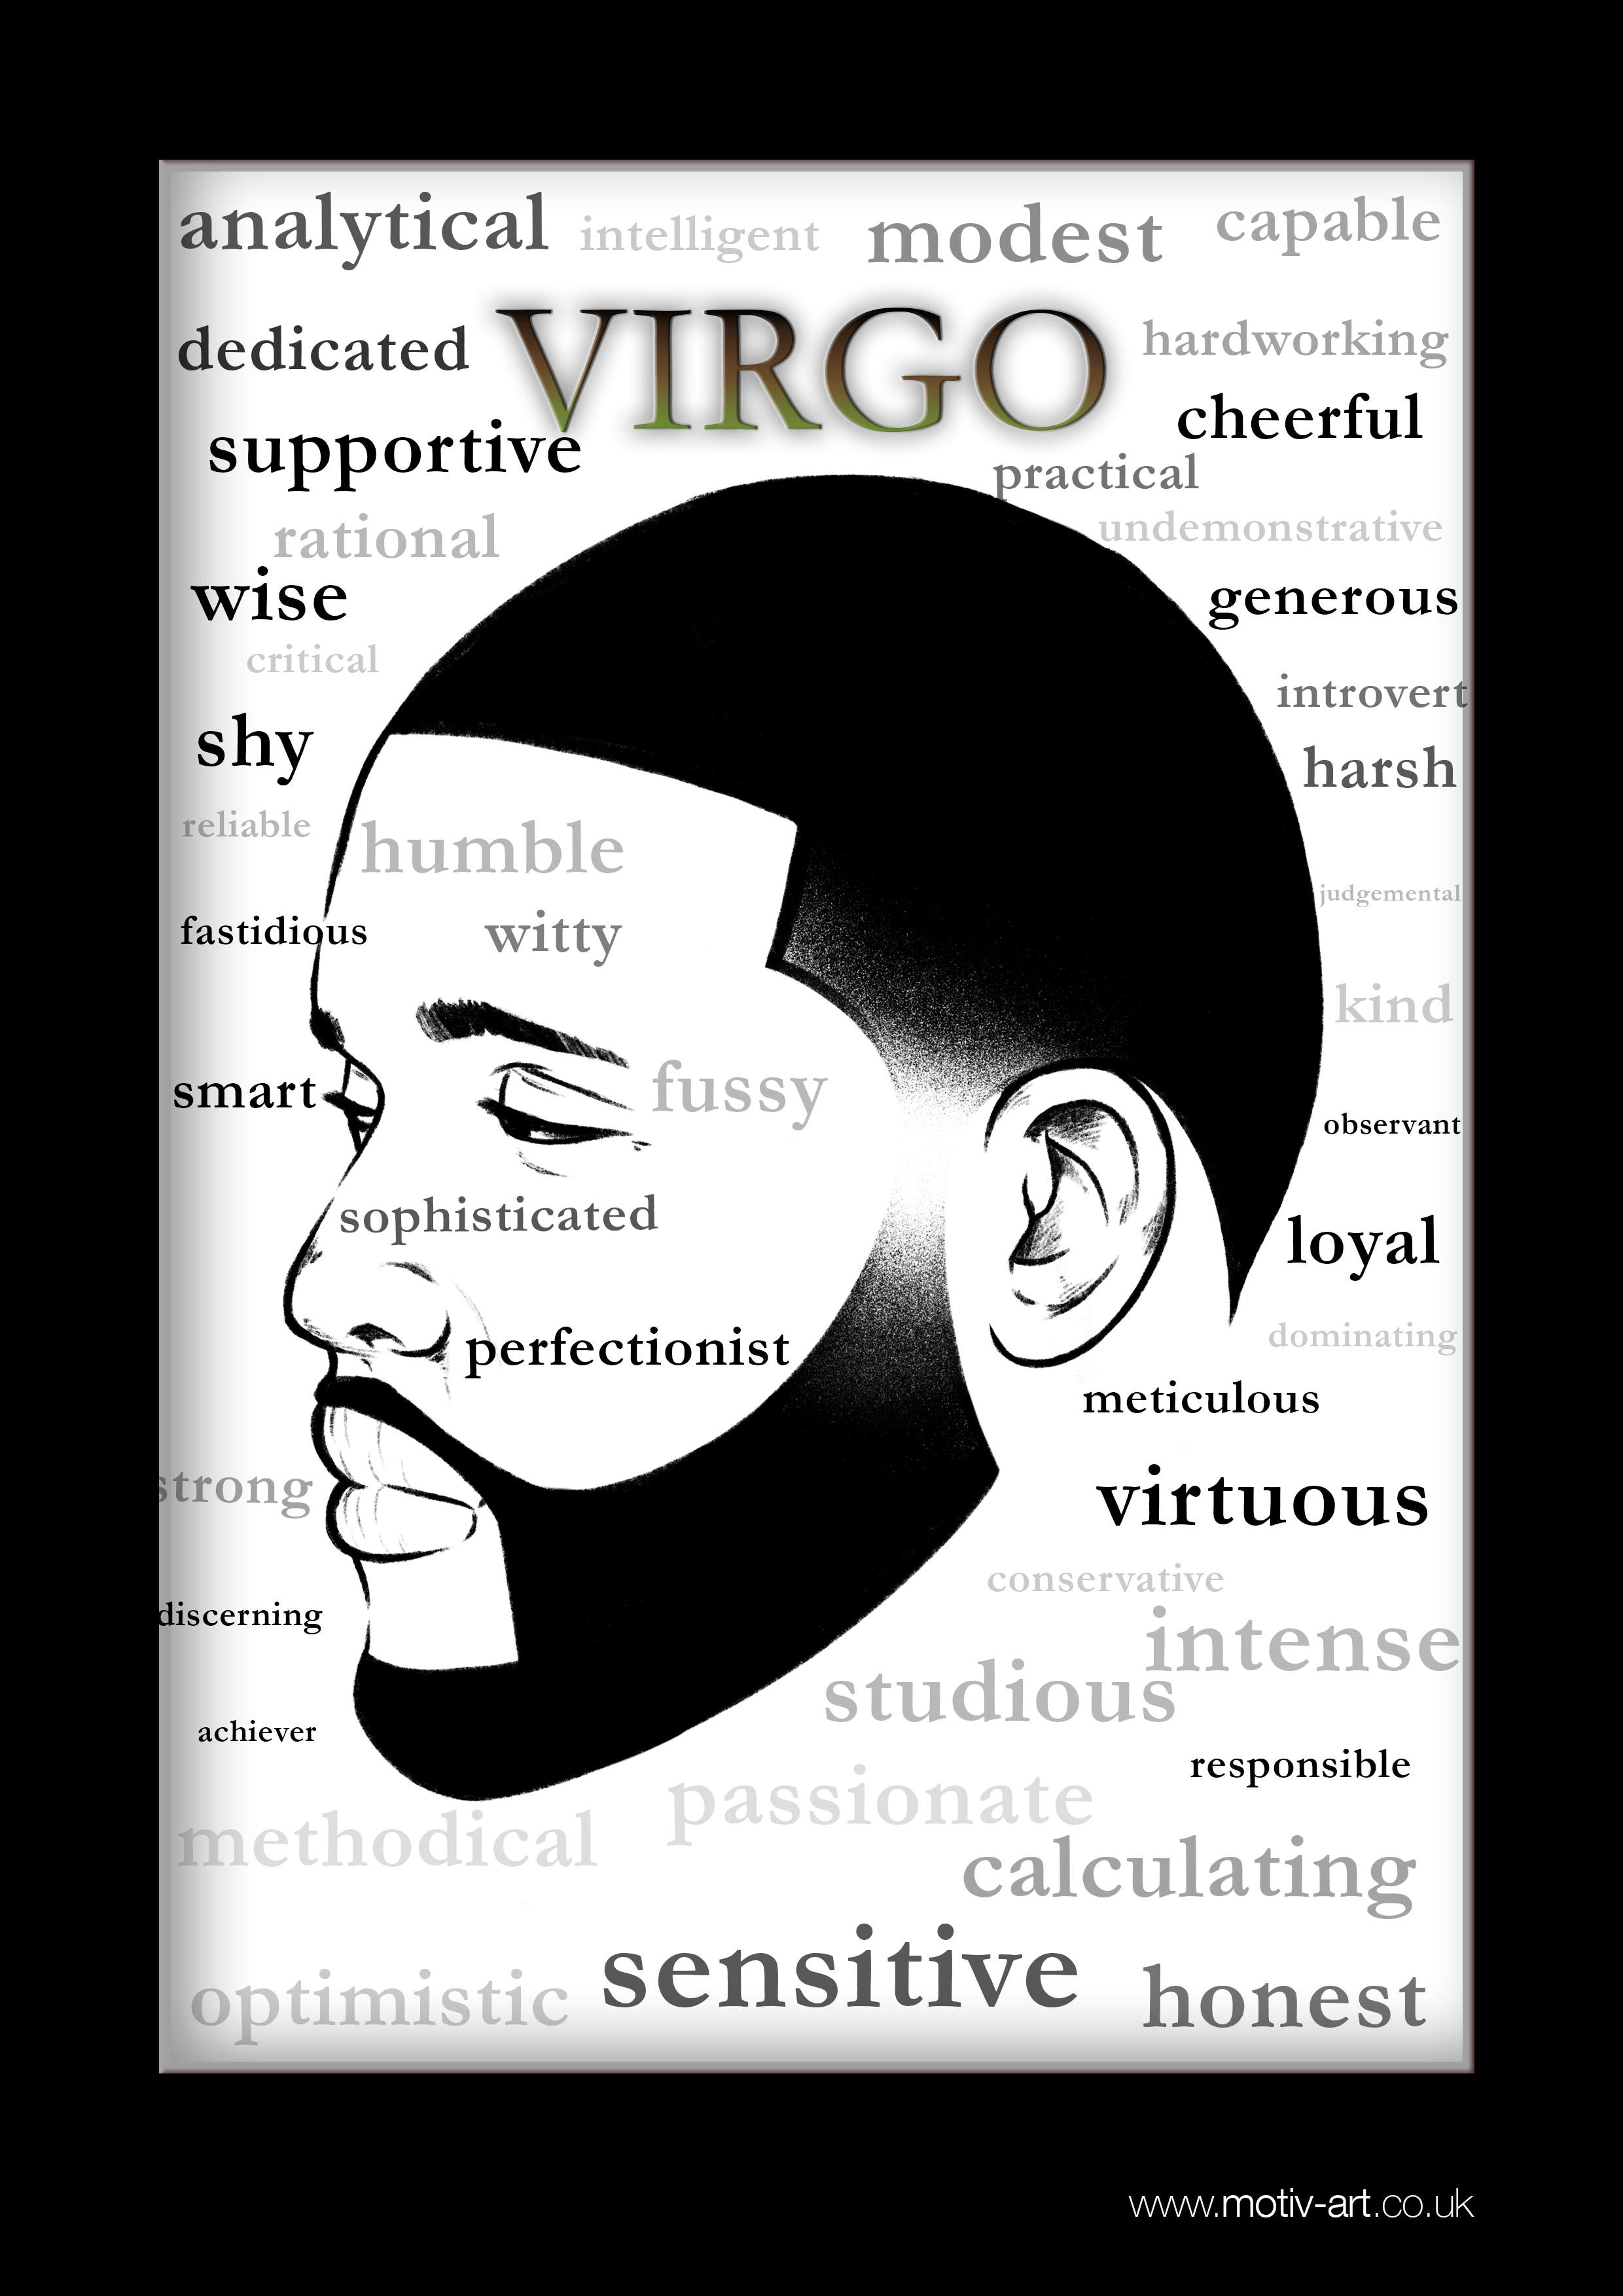 Virgo - 22 Aug - 23 Sept